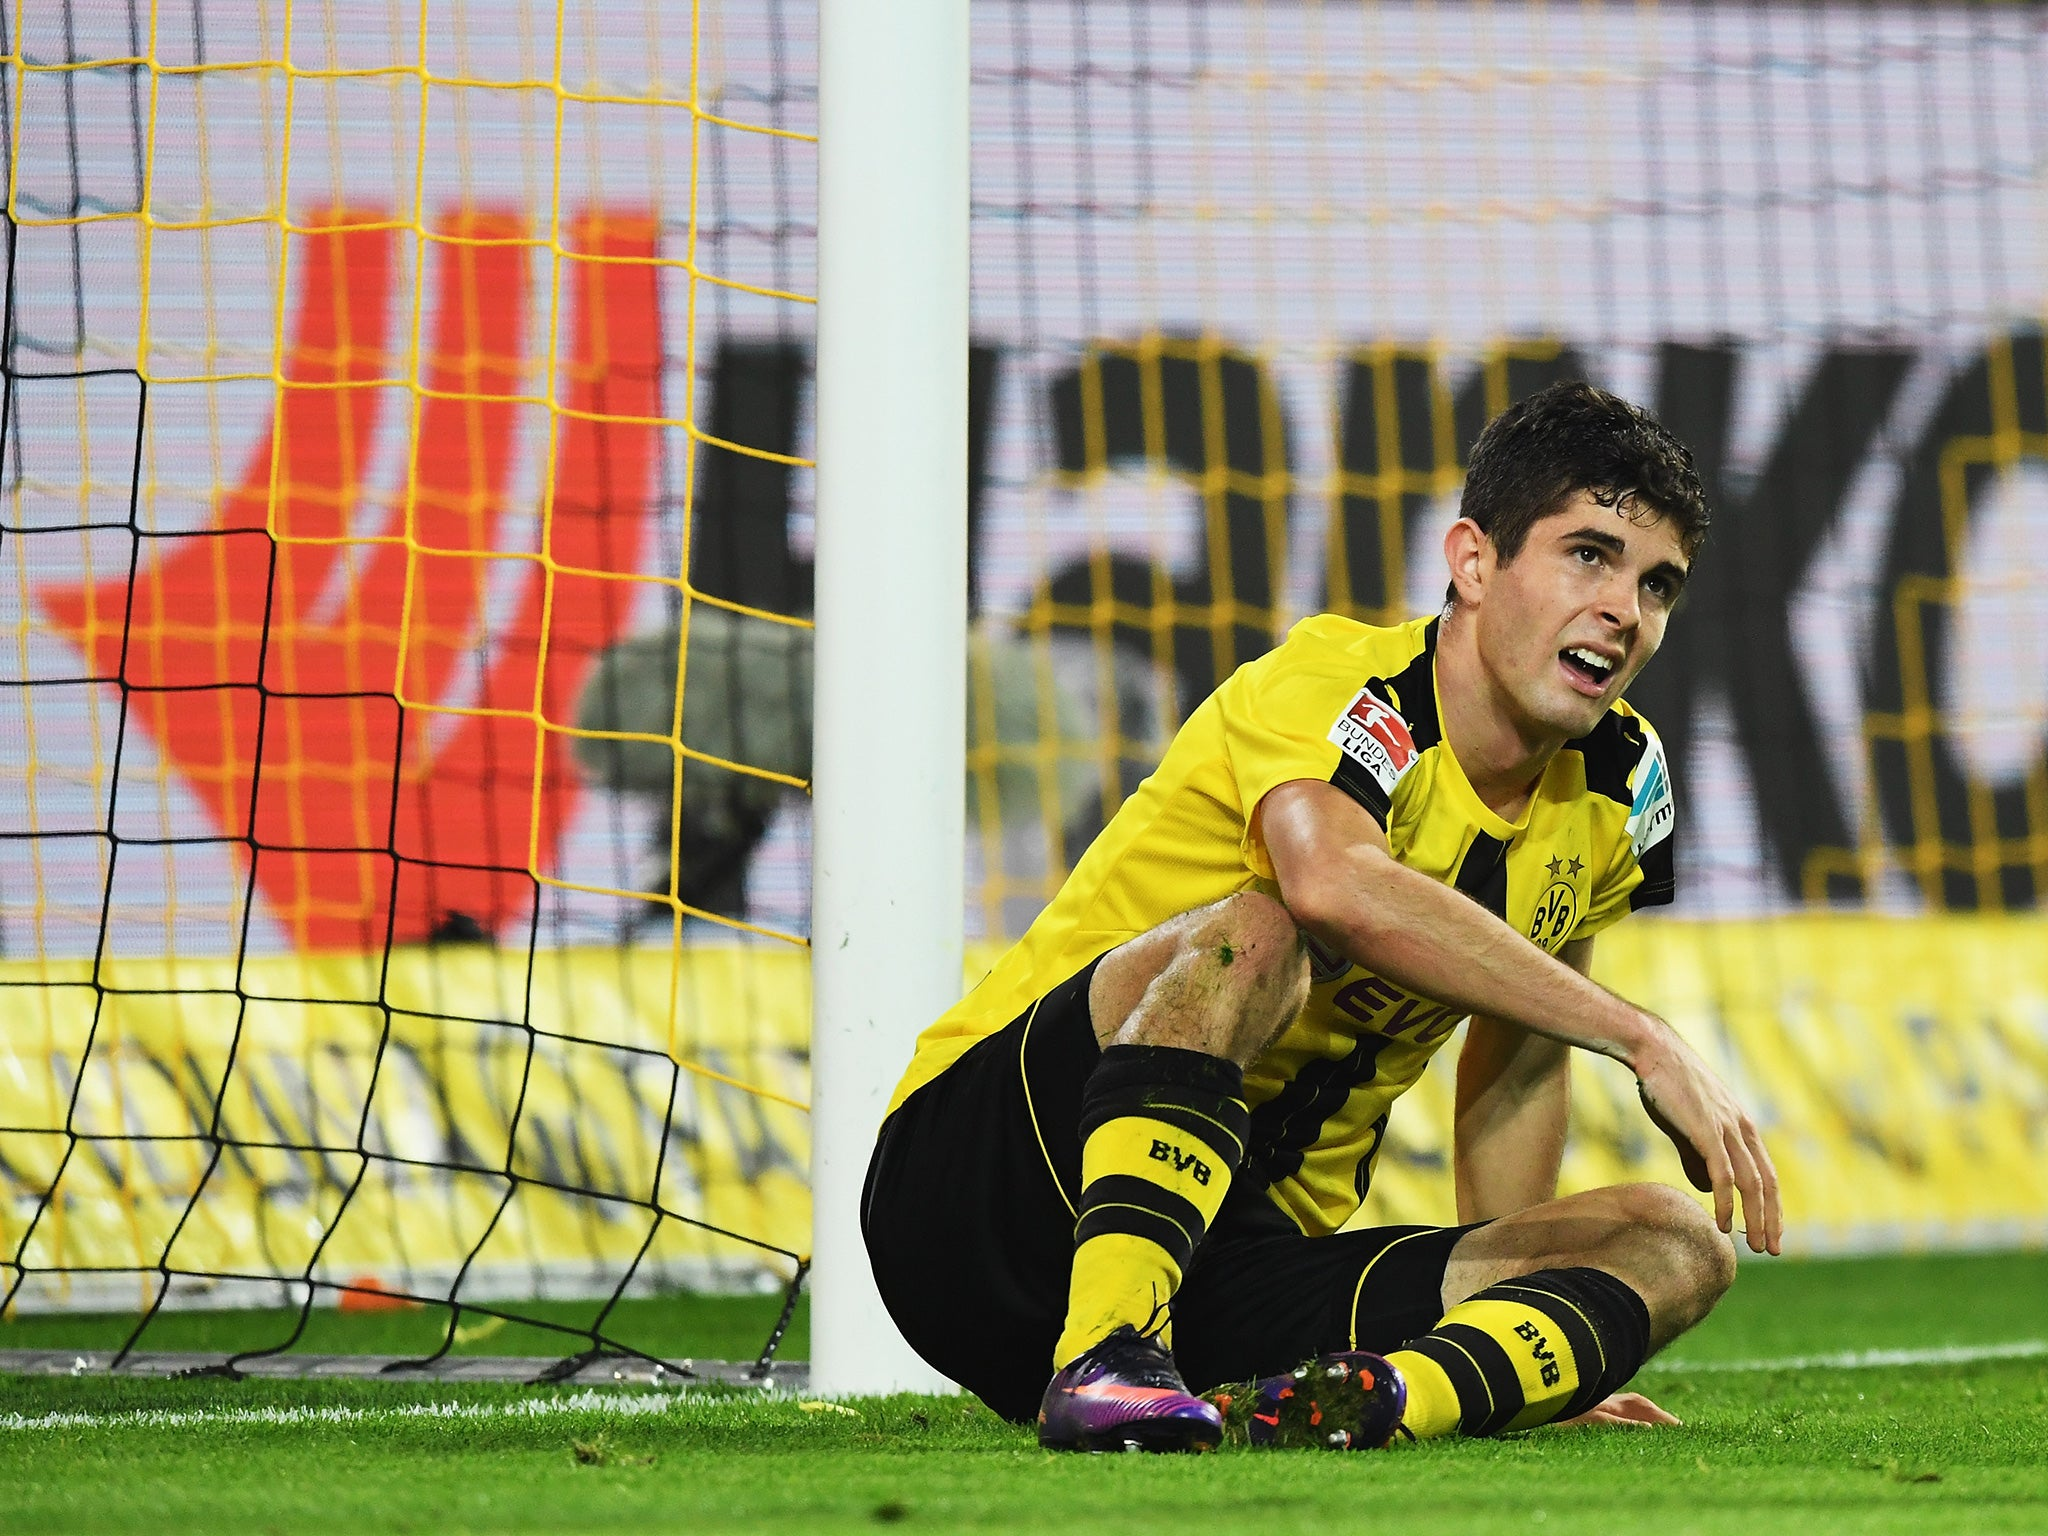 Liverpool transfer news: Borussia Dortmund ready to renew Christian Pulisic contract | The Independentindependent_brand_ident_LOGOUntitled